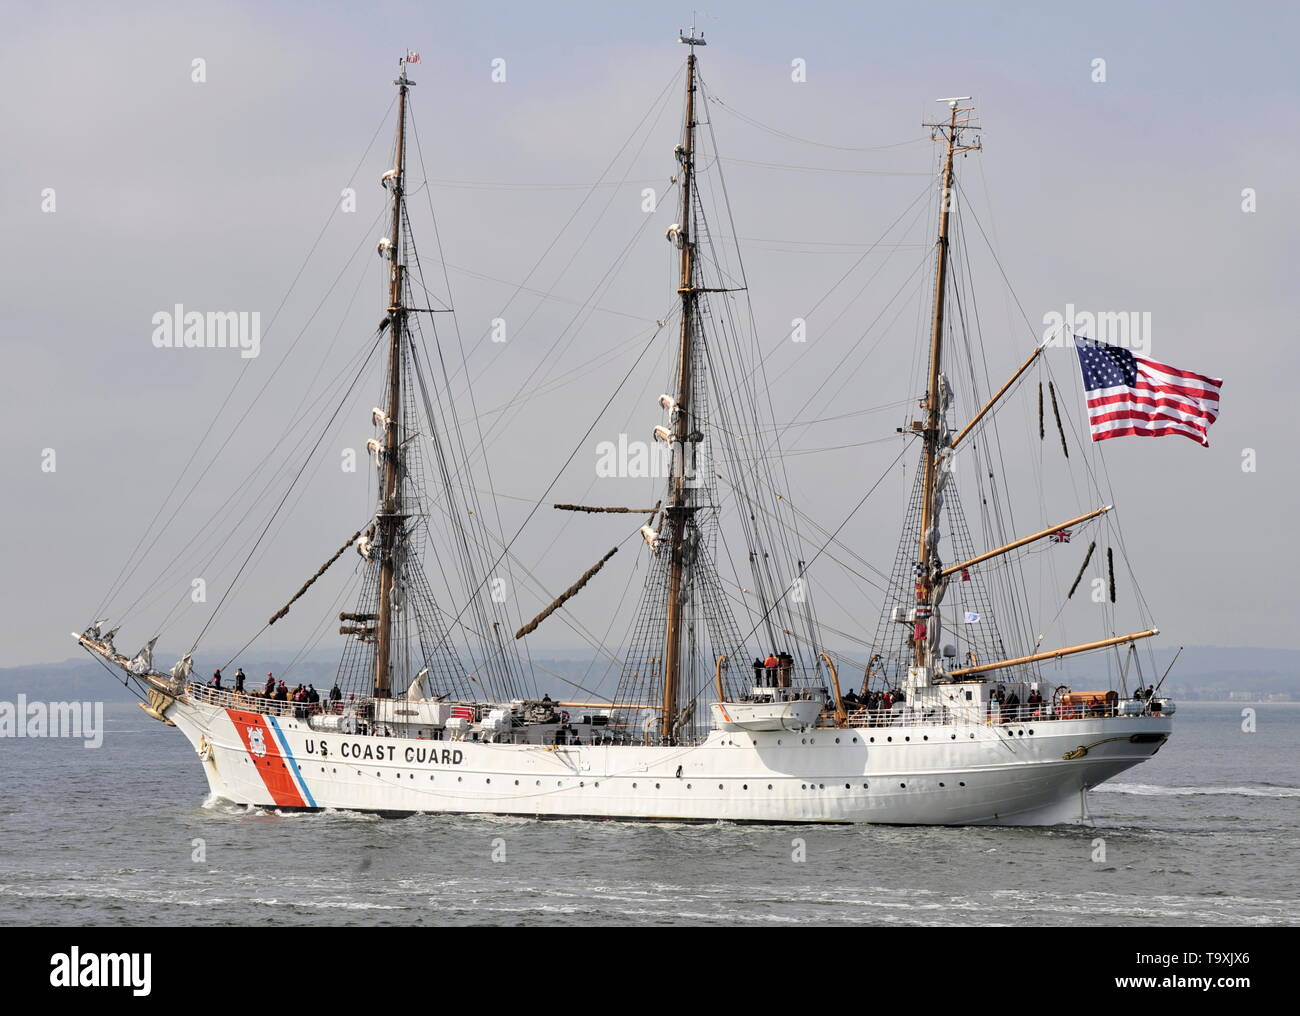 AJAX NEWS PHOTOS. 30TH APRIL, 2019. PORTSMOUTH,ENGLAND. - U.S. COAST GUARD TRAINING SHIP EAGLE, BUILT 1936 BY GERMAN YARD BLOHMN & VOSS AS THE HORST WESSEL, OUTWARD BOUND AFTER A COURTESY VISIT. PHOTO:TONY HOLLAND/AJAX REF:DTH191105_7742 - Stock Image